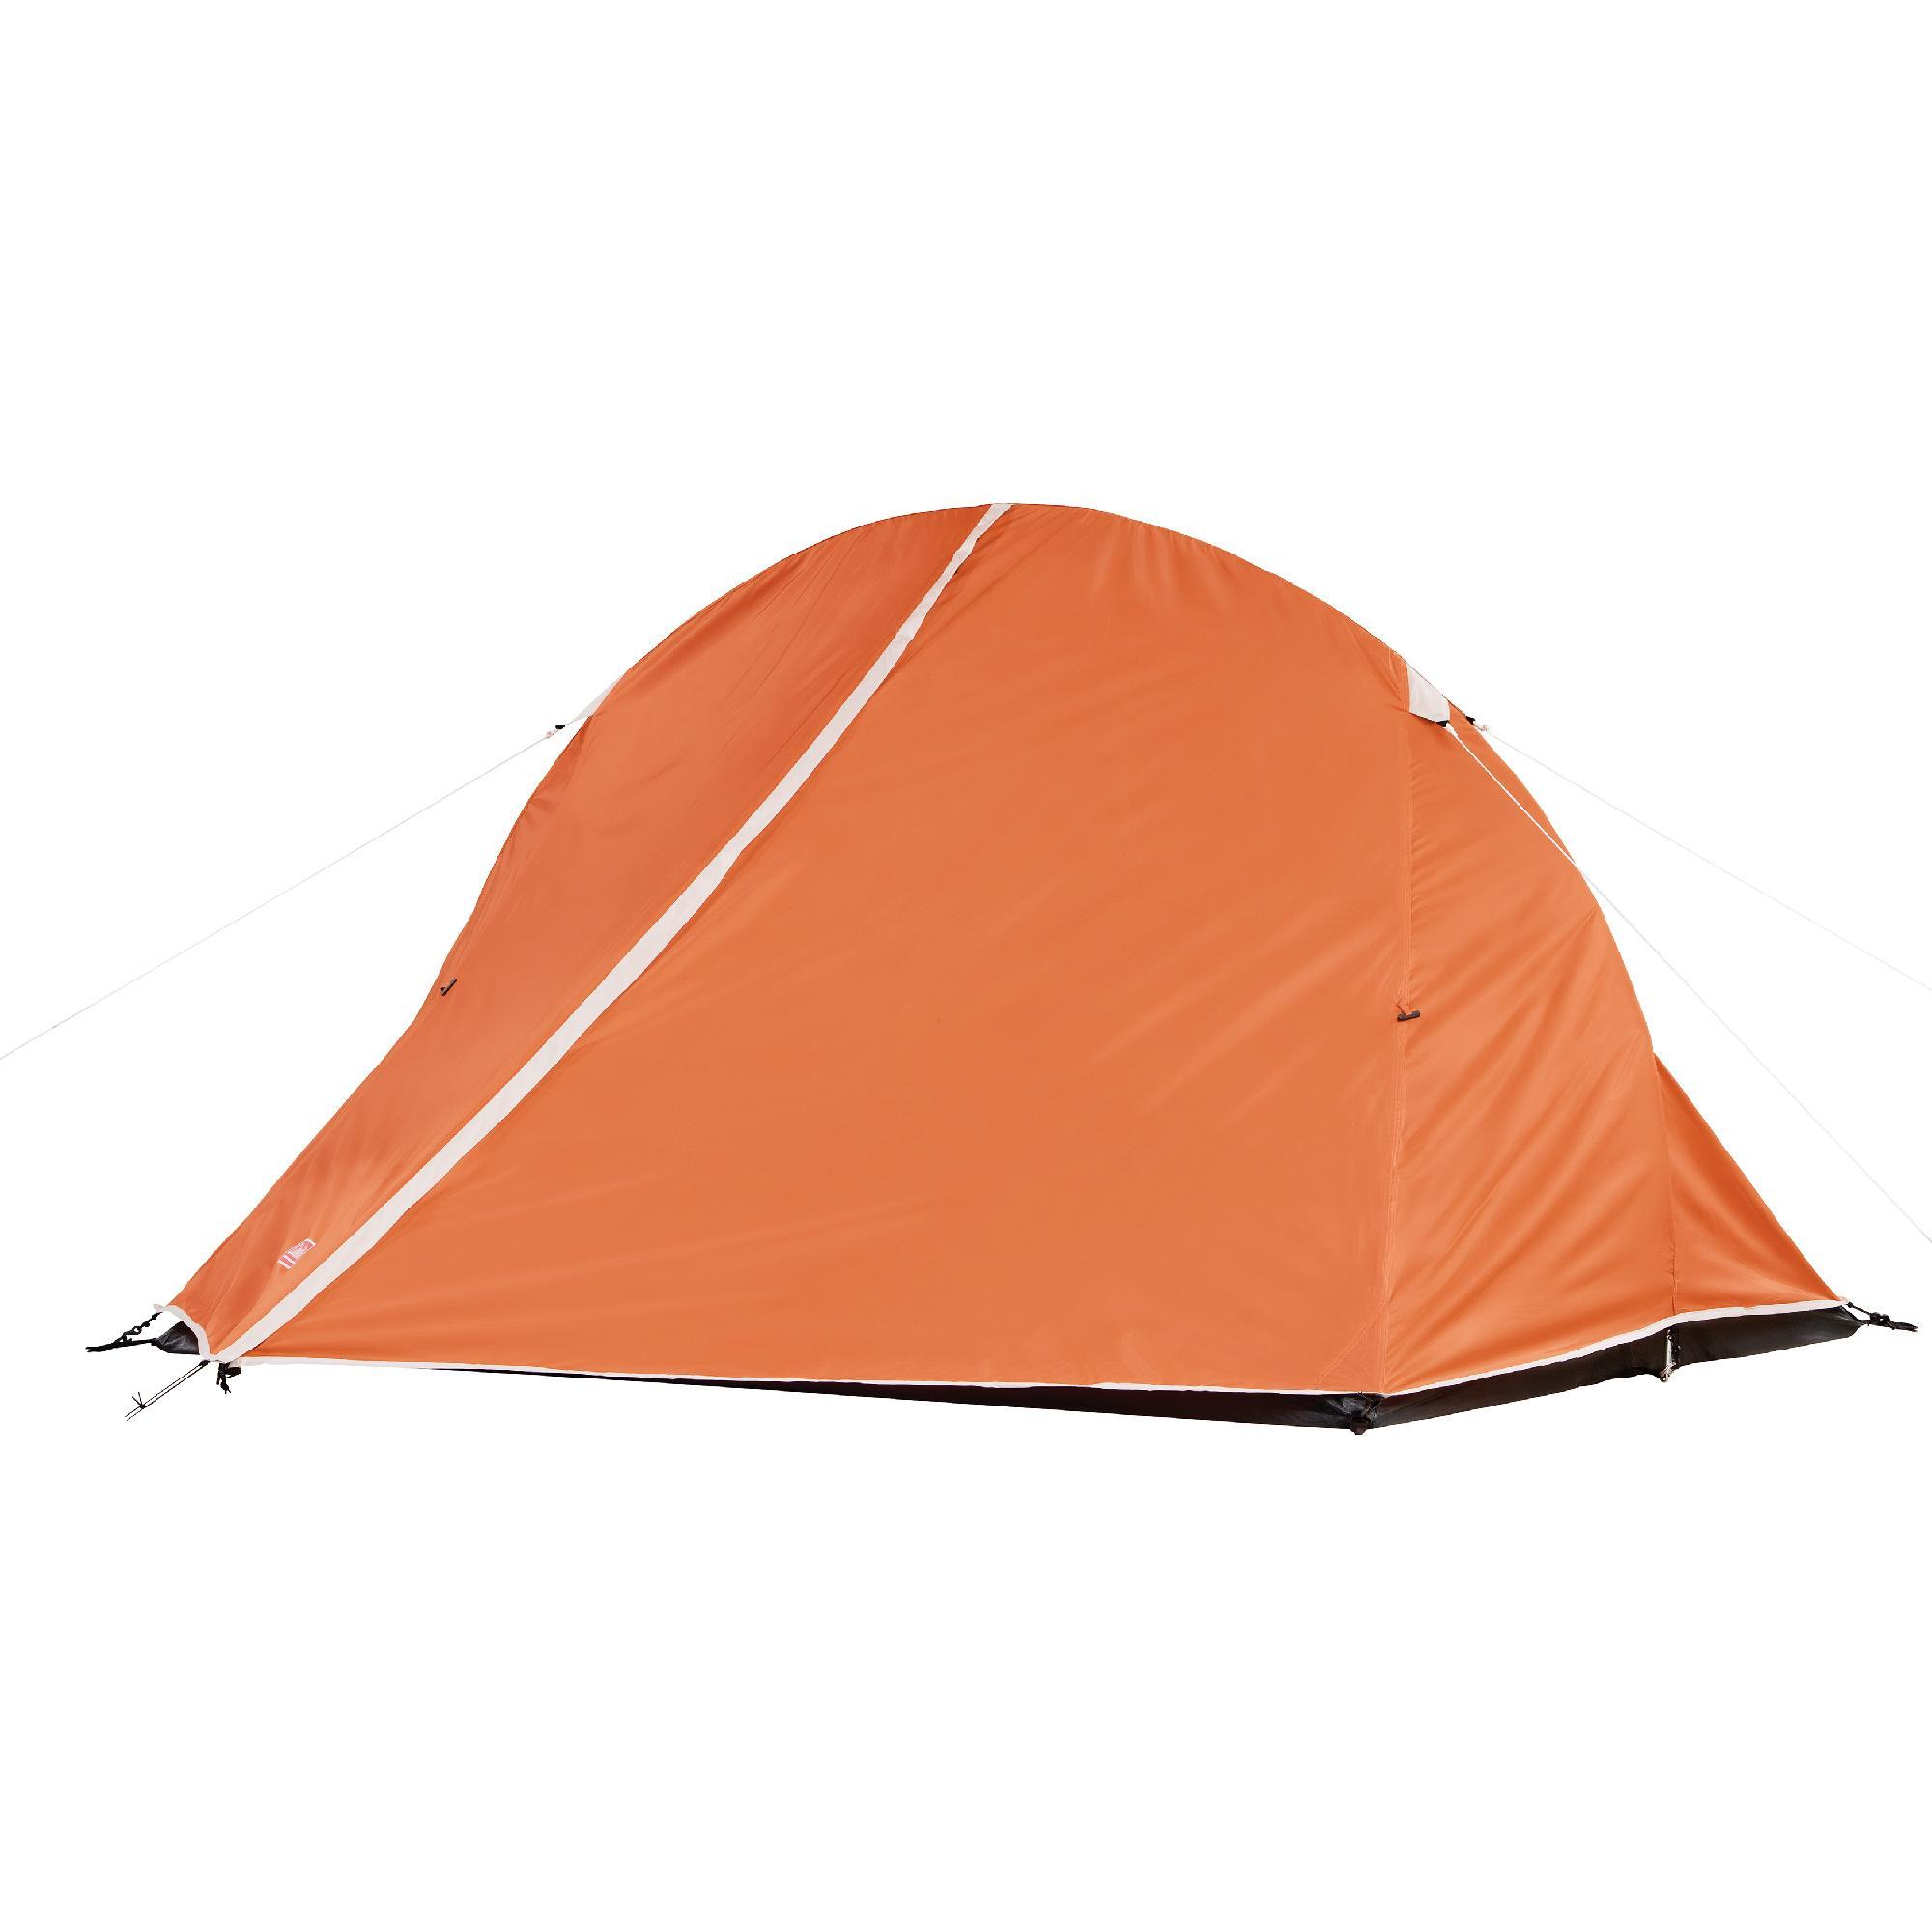 New Coleman Lightweight 2 Person Tent For C& C&ing Backpacking Scout Hiking  sc 1 st  Pinterest & Hooligan Tent - 8u0027 x 6u0027 2 Person | Products | Pinterest | Tents ...